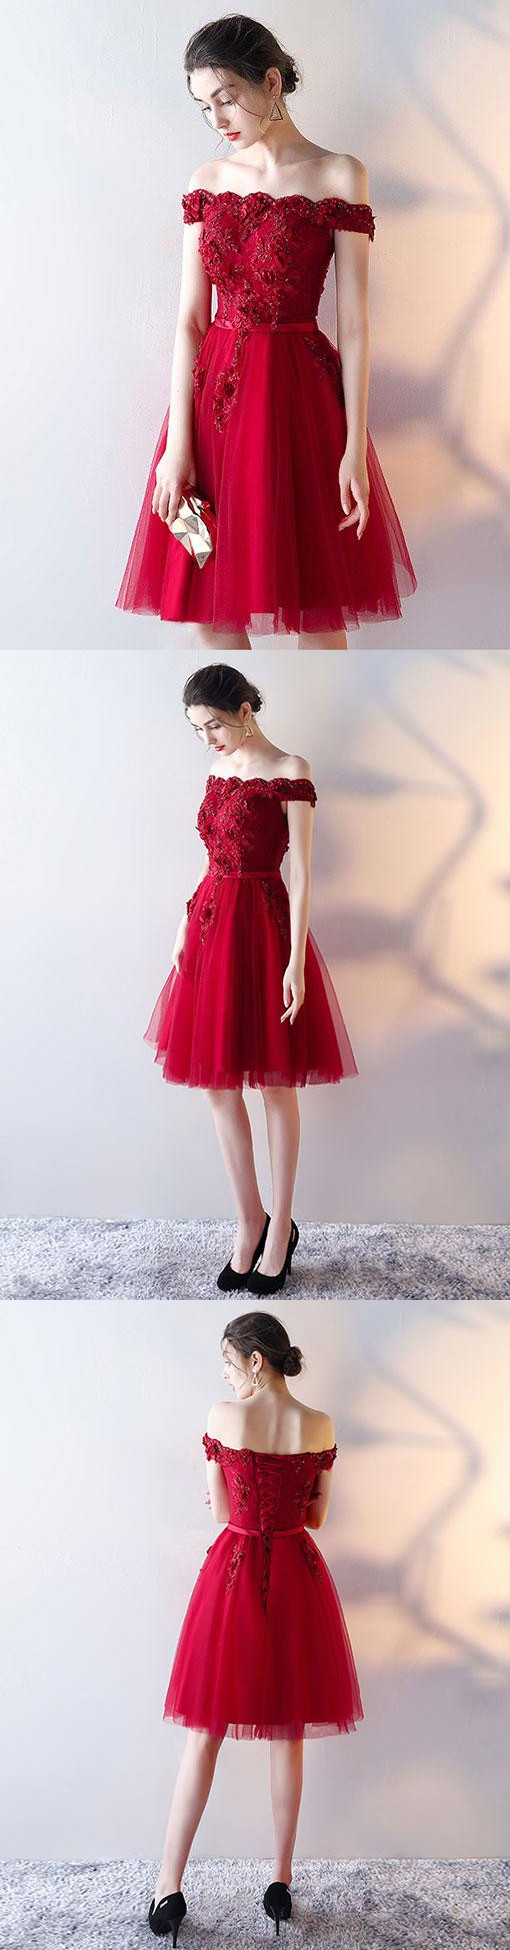 Red homecoming dresscute homecoming dressoffshoulder tulle